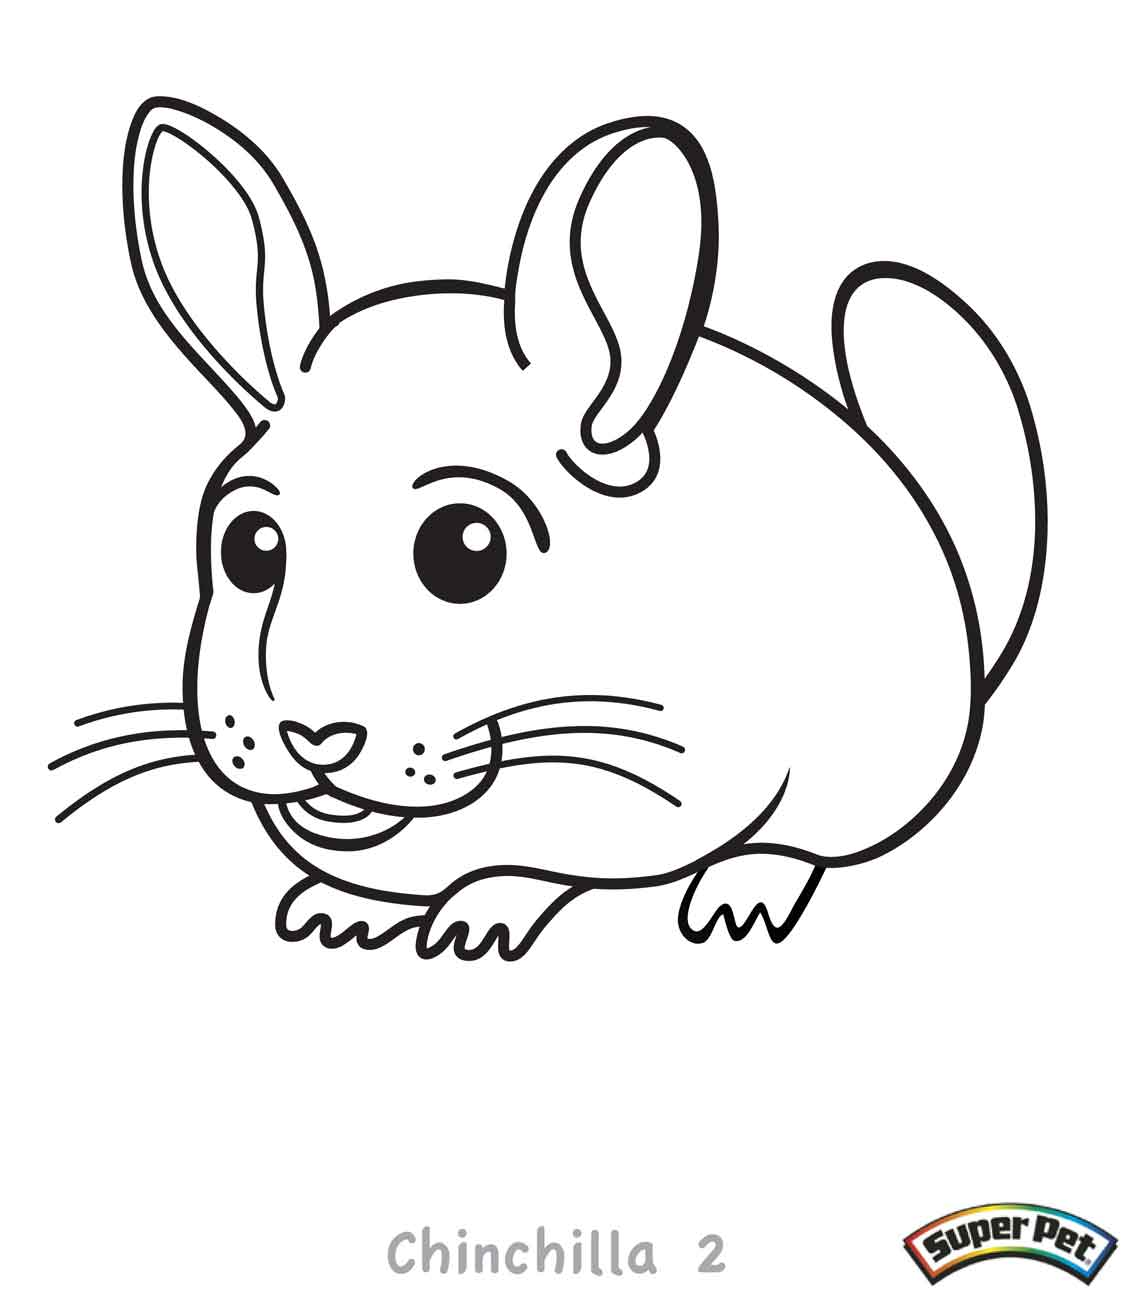 Chinchilla drawing at free for personal for Chinchilla coloring pages to print